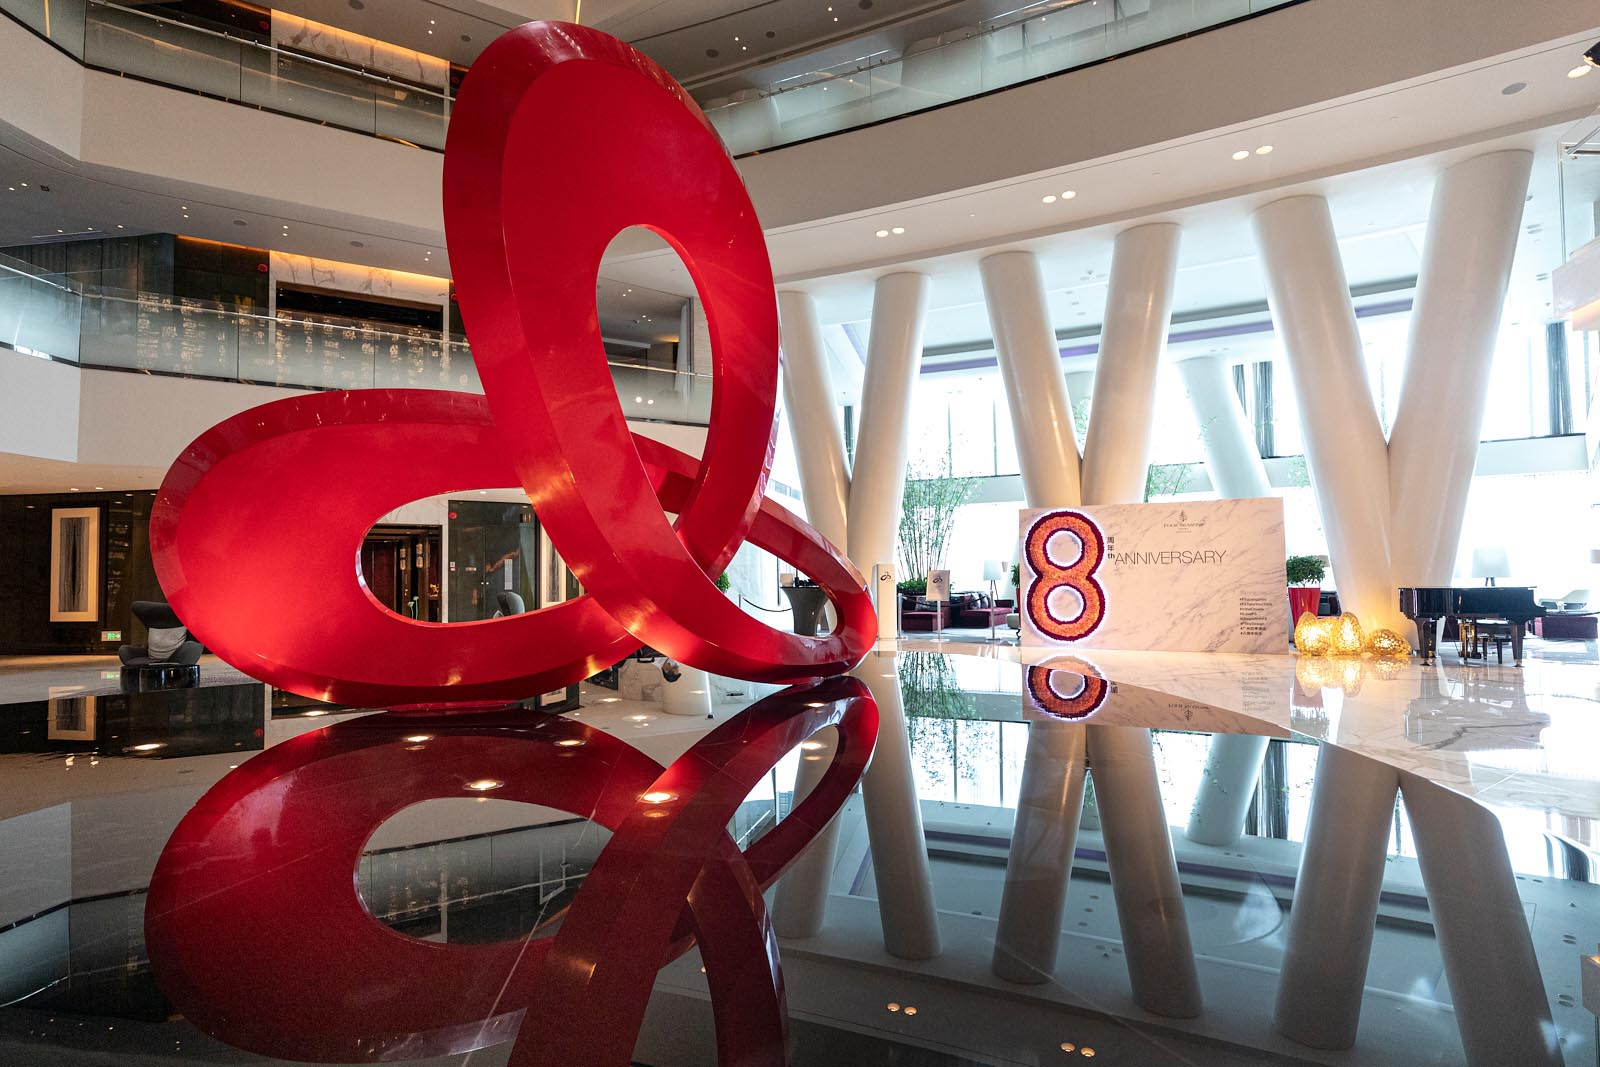 Four Seasons Hotel Guangzhou Celebrates Its 8th Anniversary